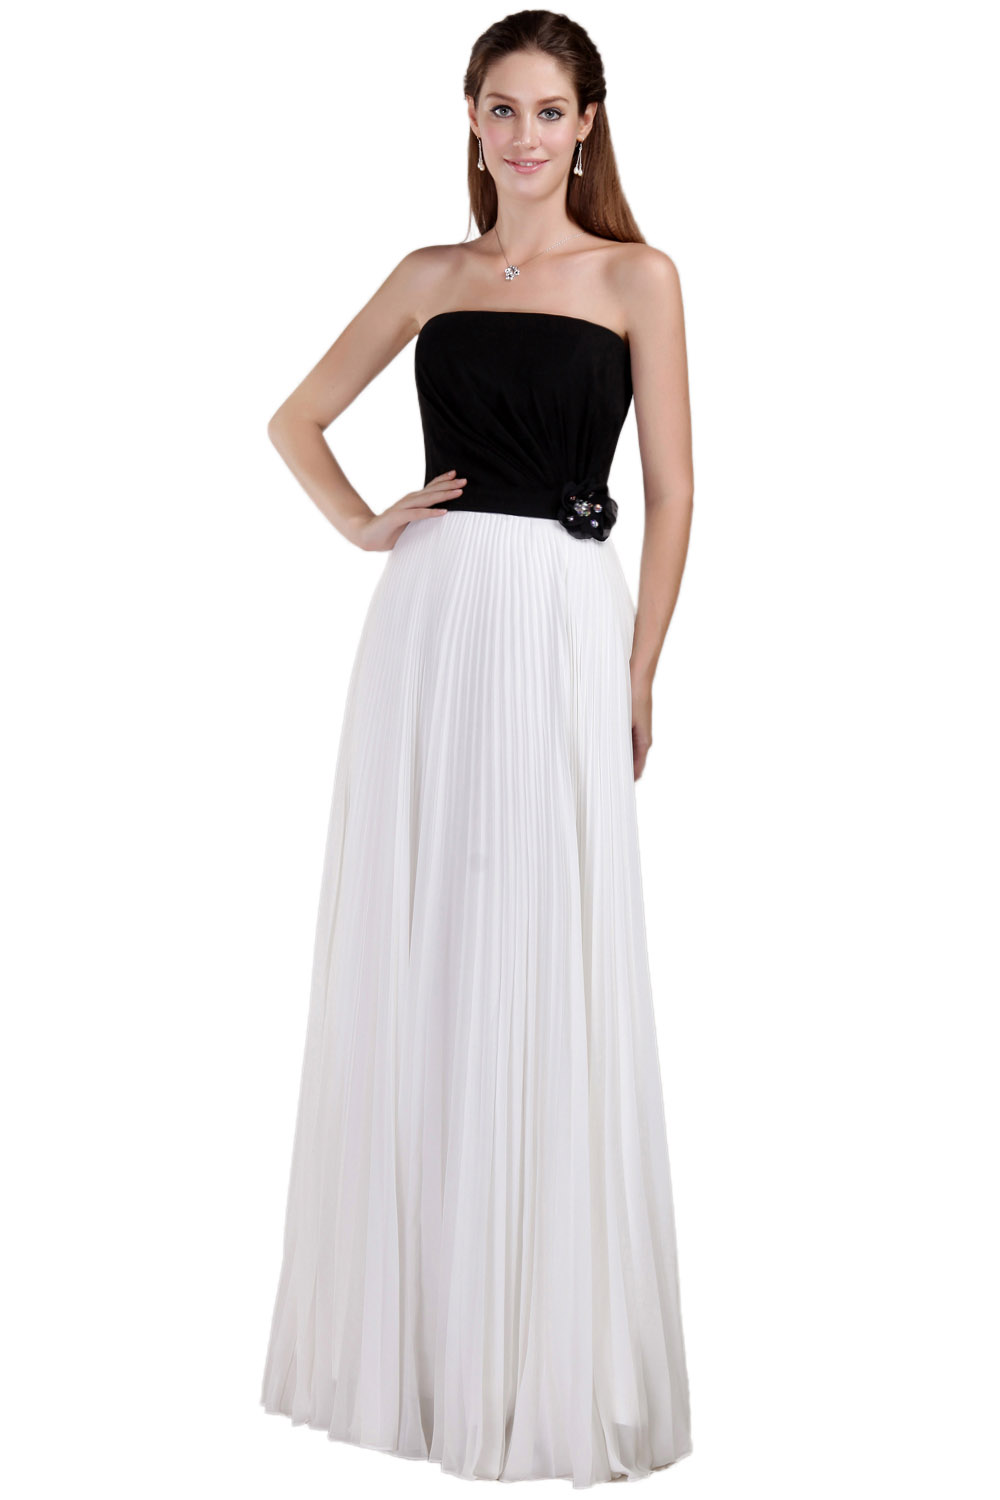 Princess One Shoulder Short/Mini Satin Tulle Evening Dress